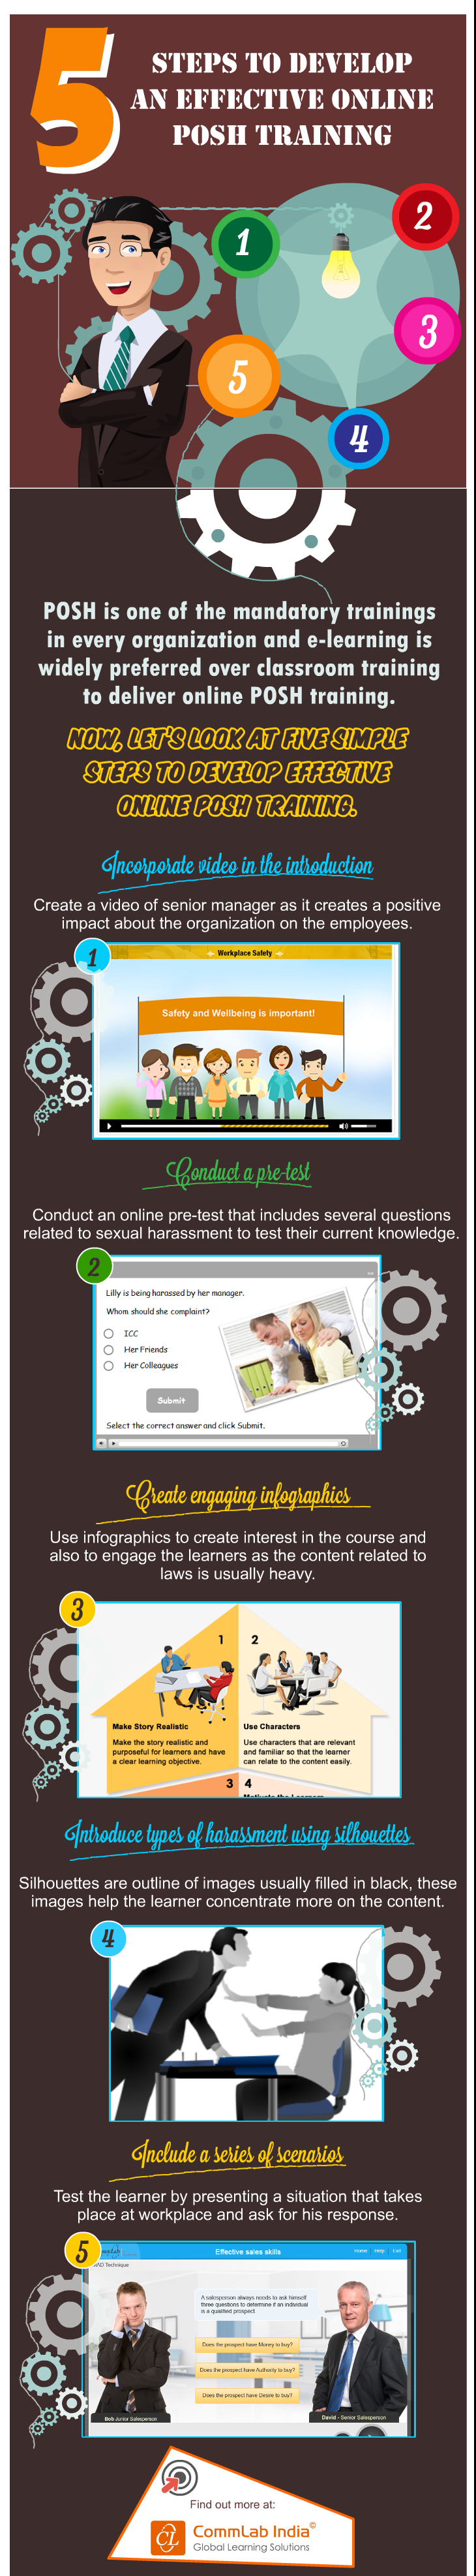 Creating an Effective Online Course to Impart POSH Training [Infographic]